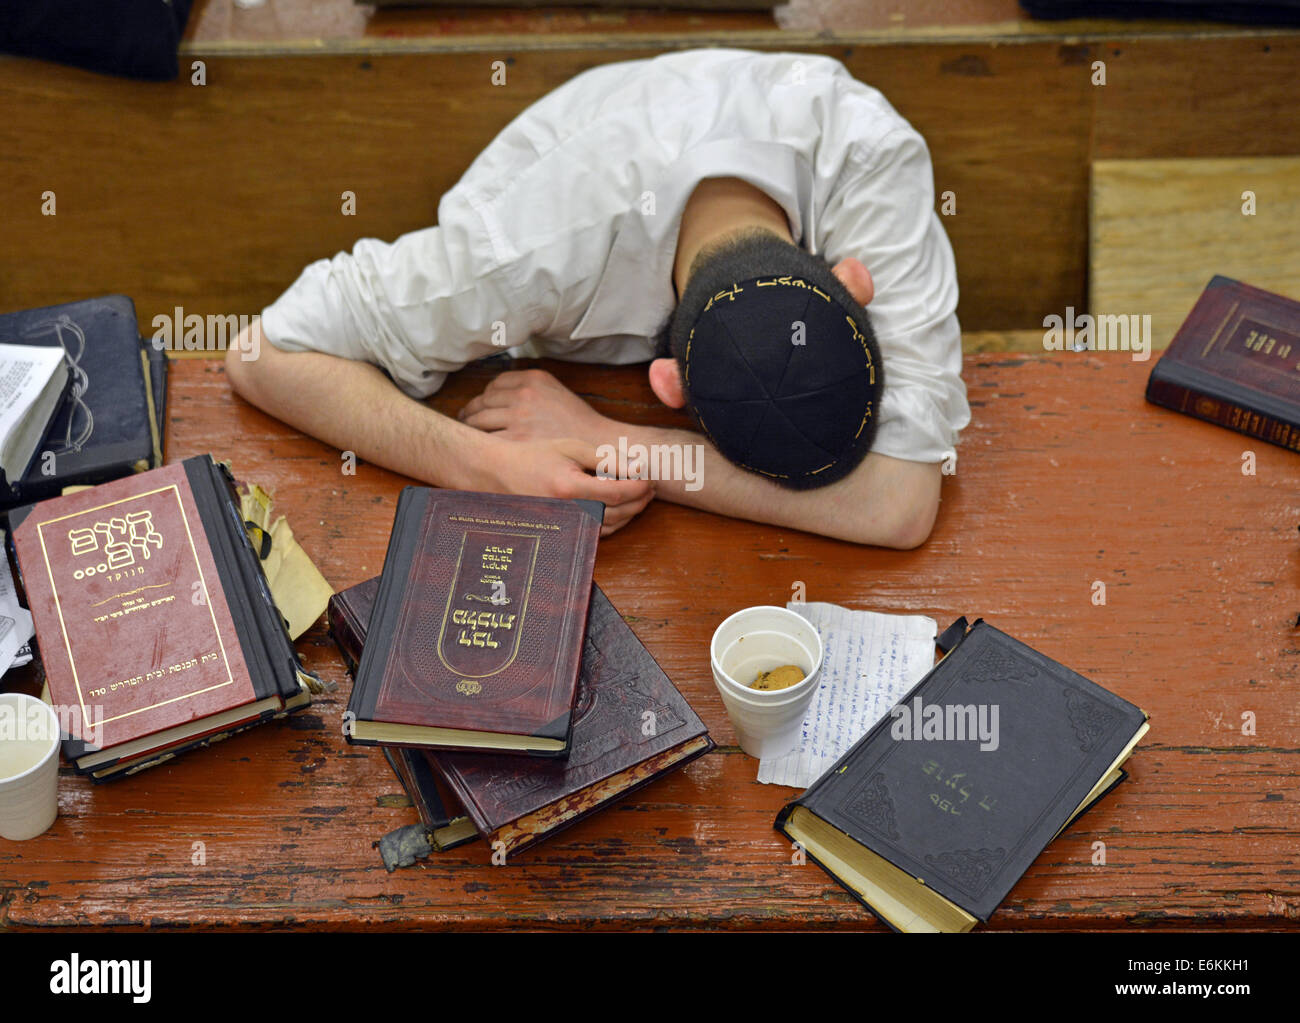 A religious Jewish boy pauses from his studies for thought, contemplation & rest in a synagogue in Brooklyn, - Stock Image